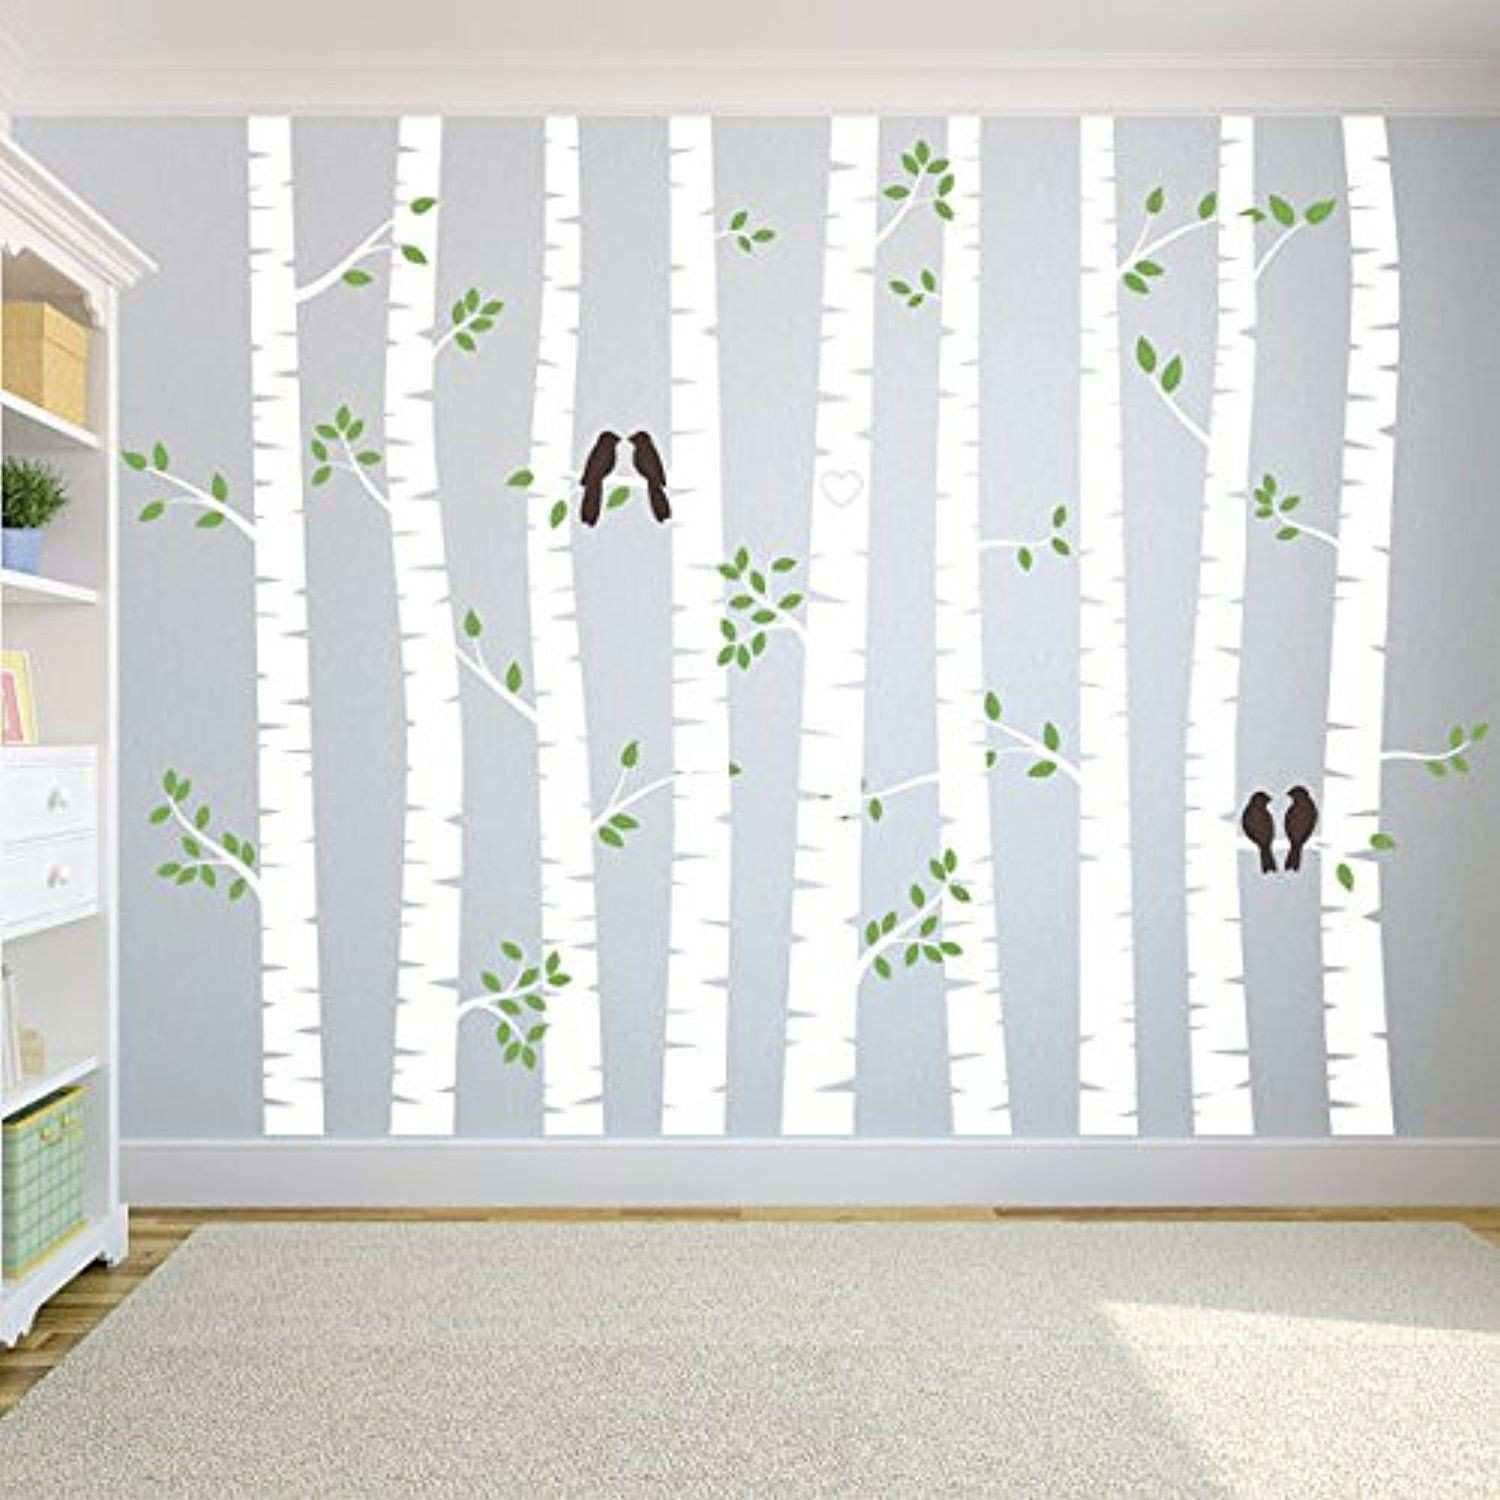 Birch Tree Wall Decal Tree Decals Tree Wall Decal Nursery Wall